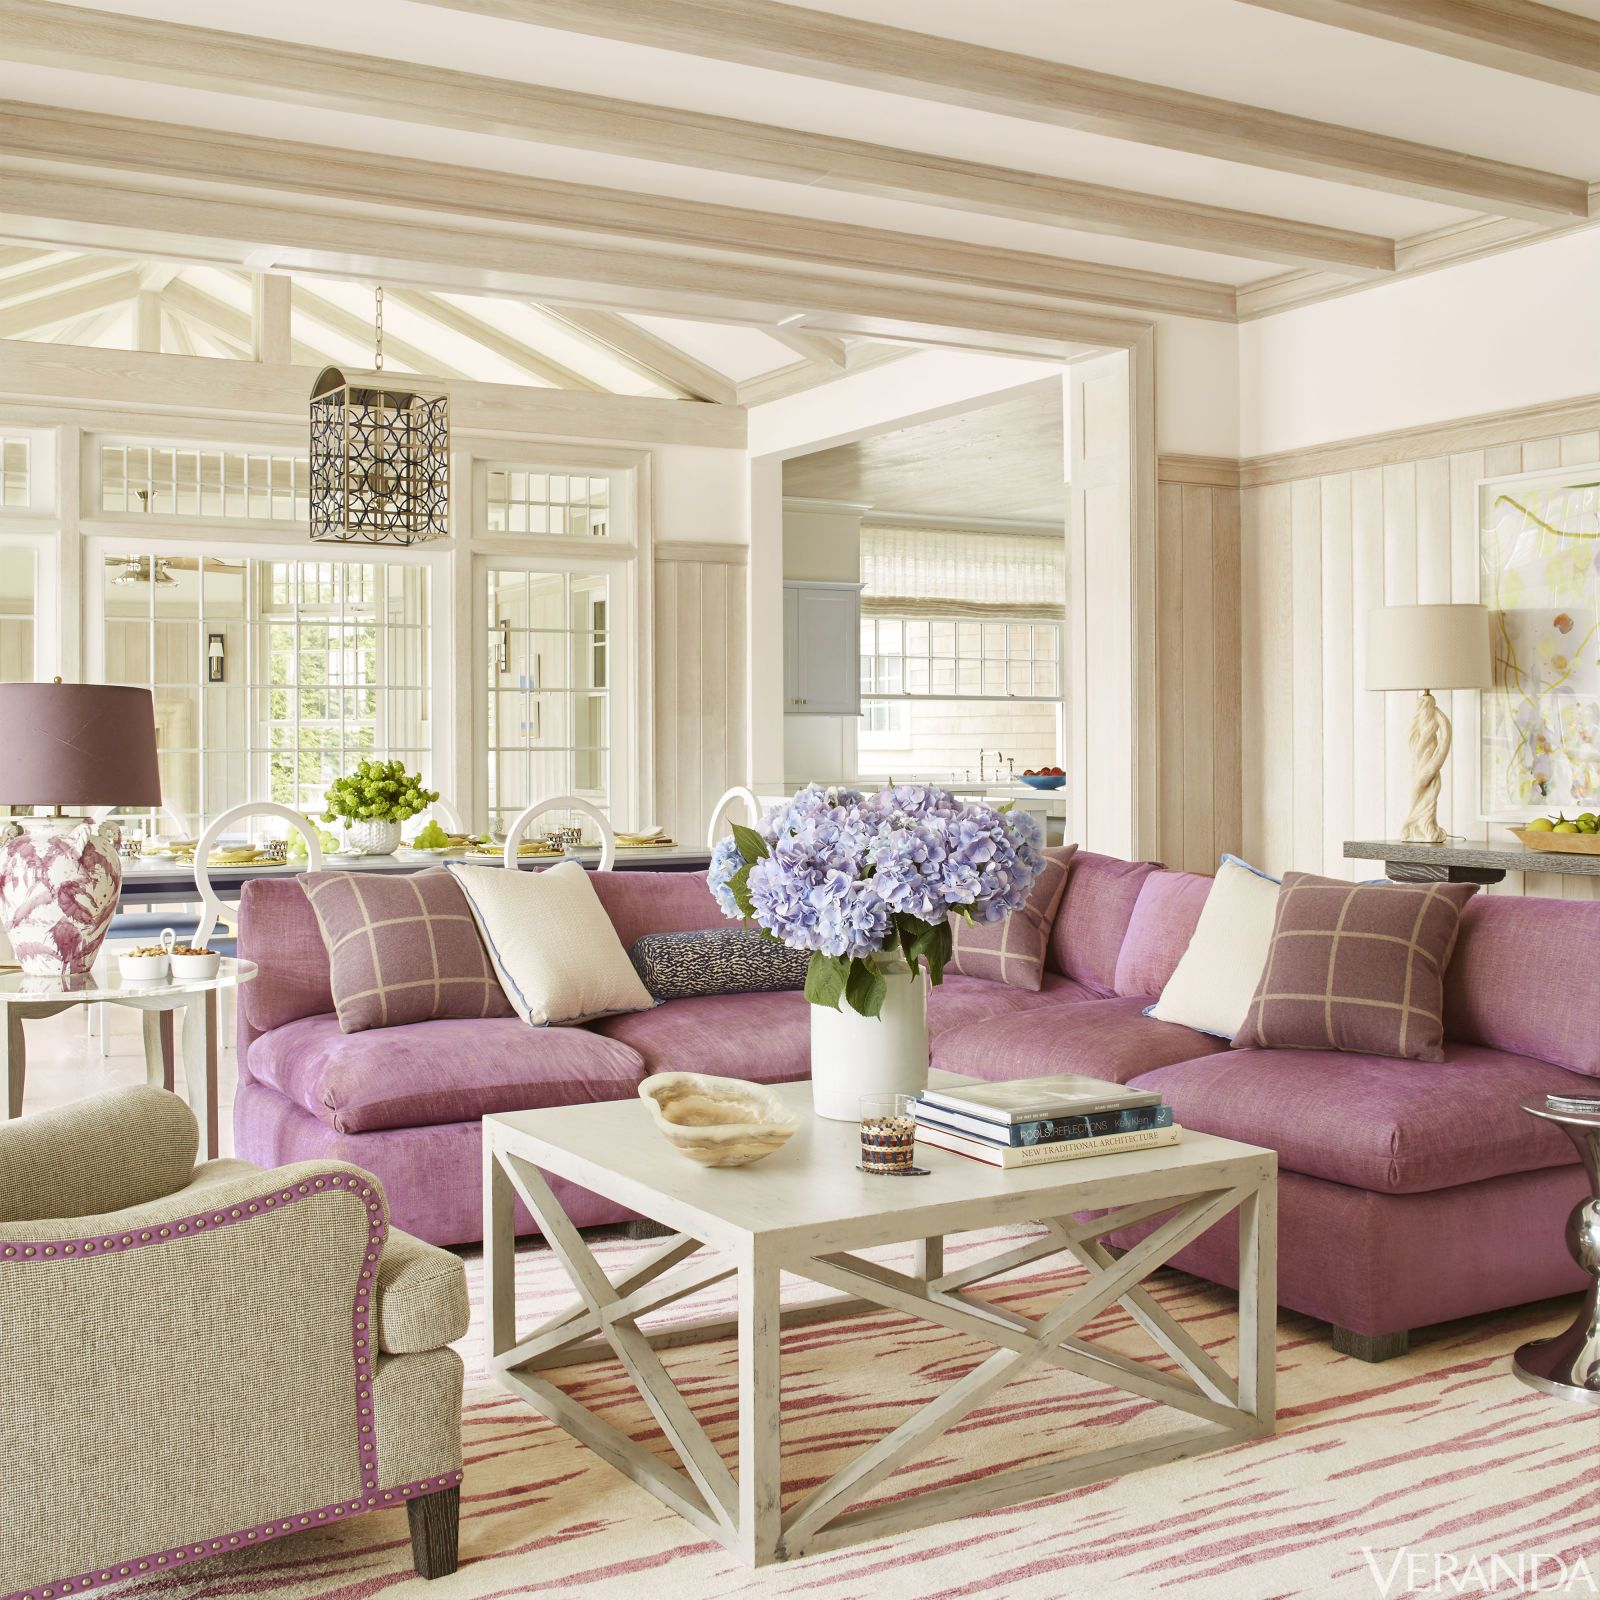 HOUSE TOUR This Relaxing Southampton Escape Is Summer Personified